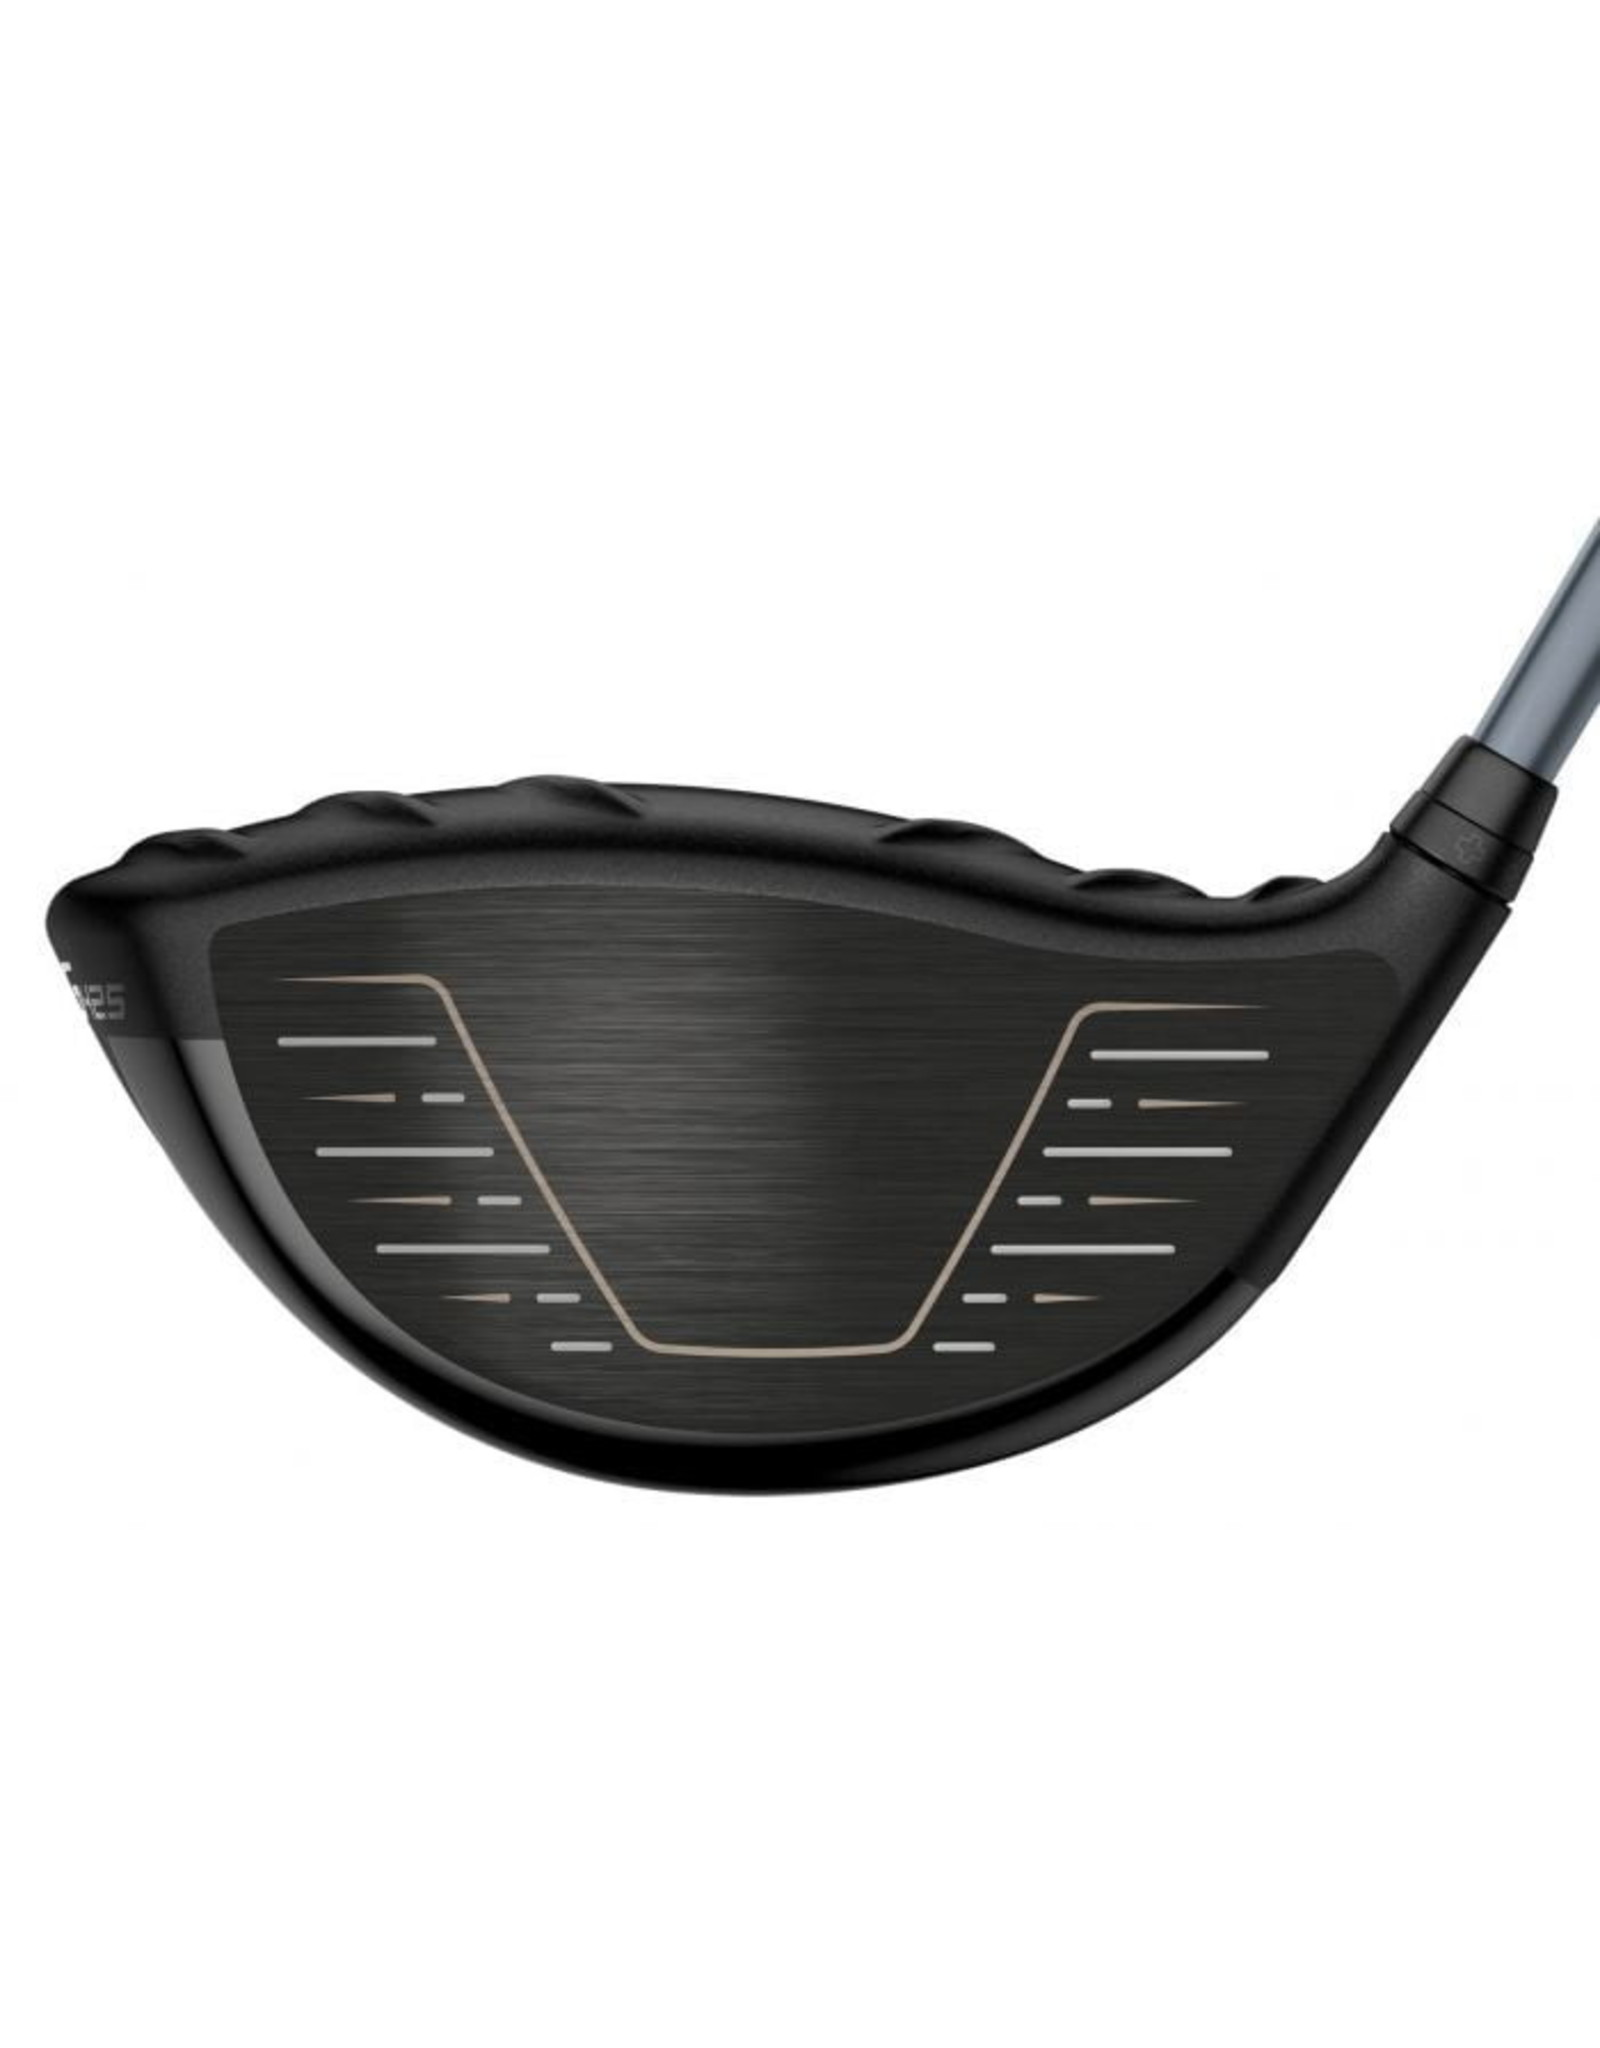 PING PING G425 LST DRIVER